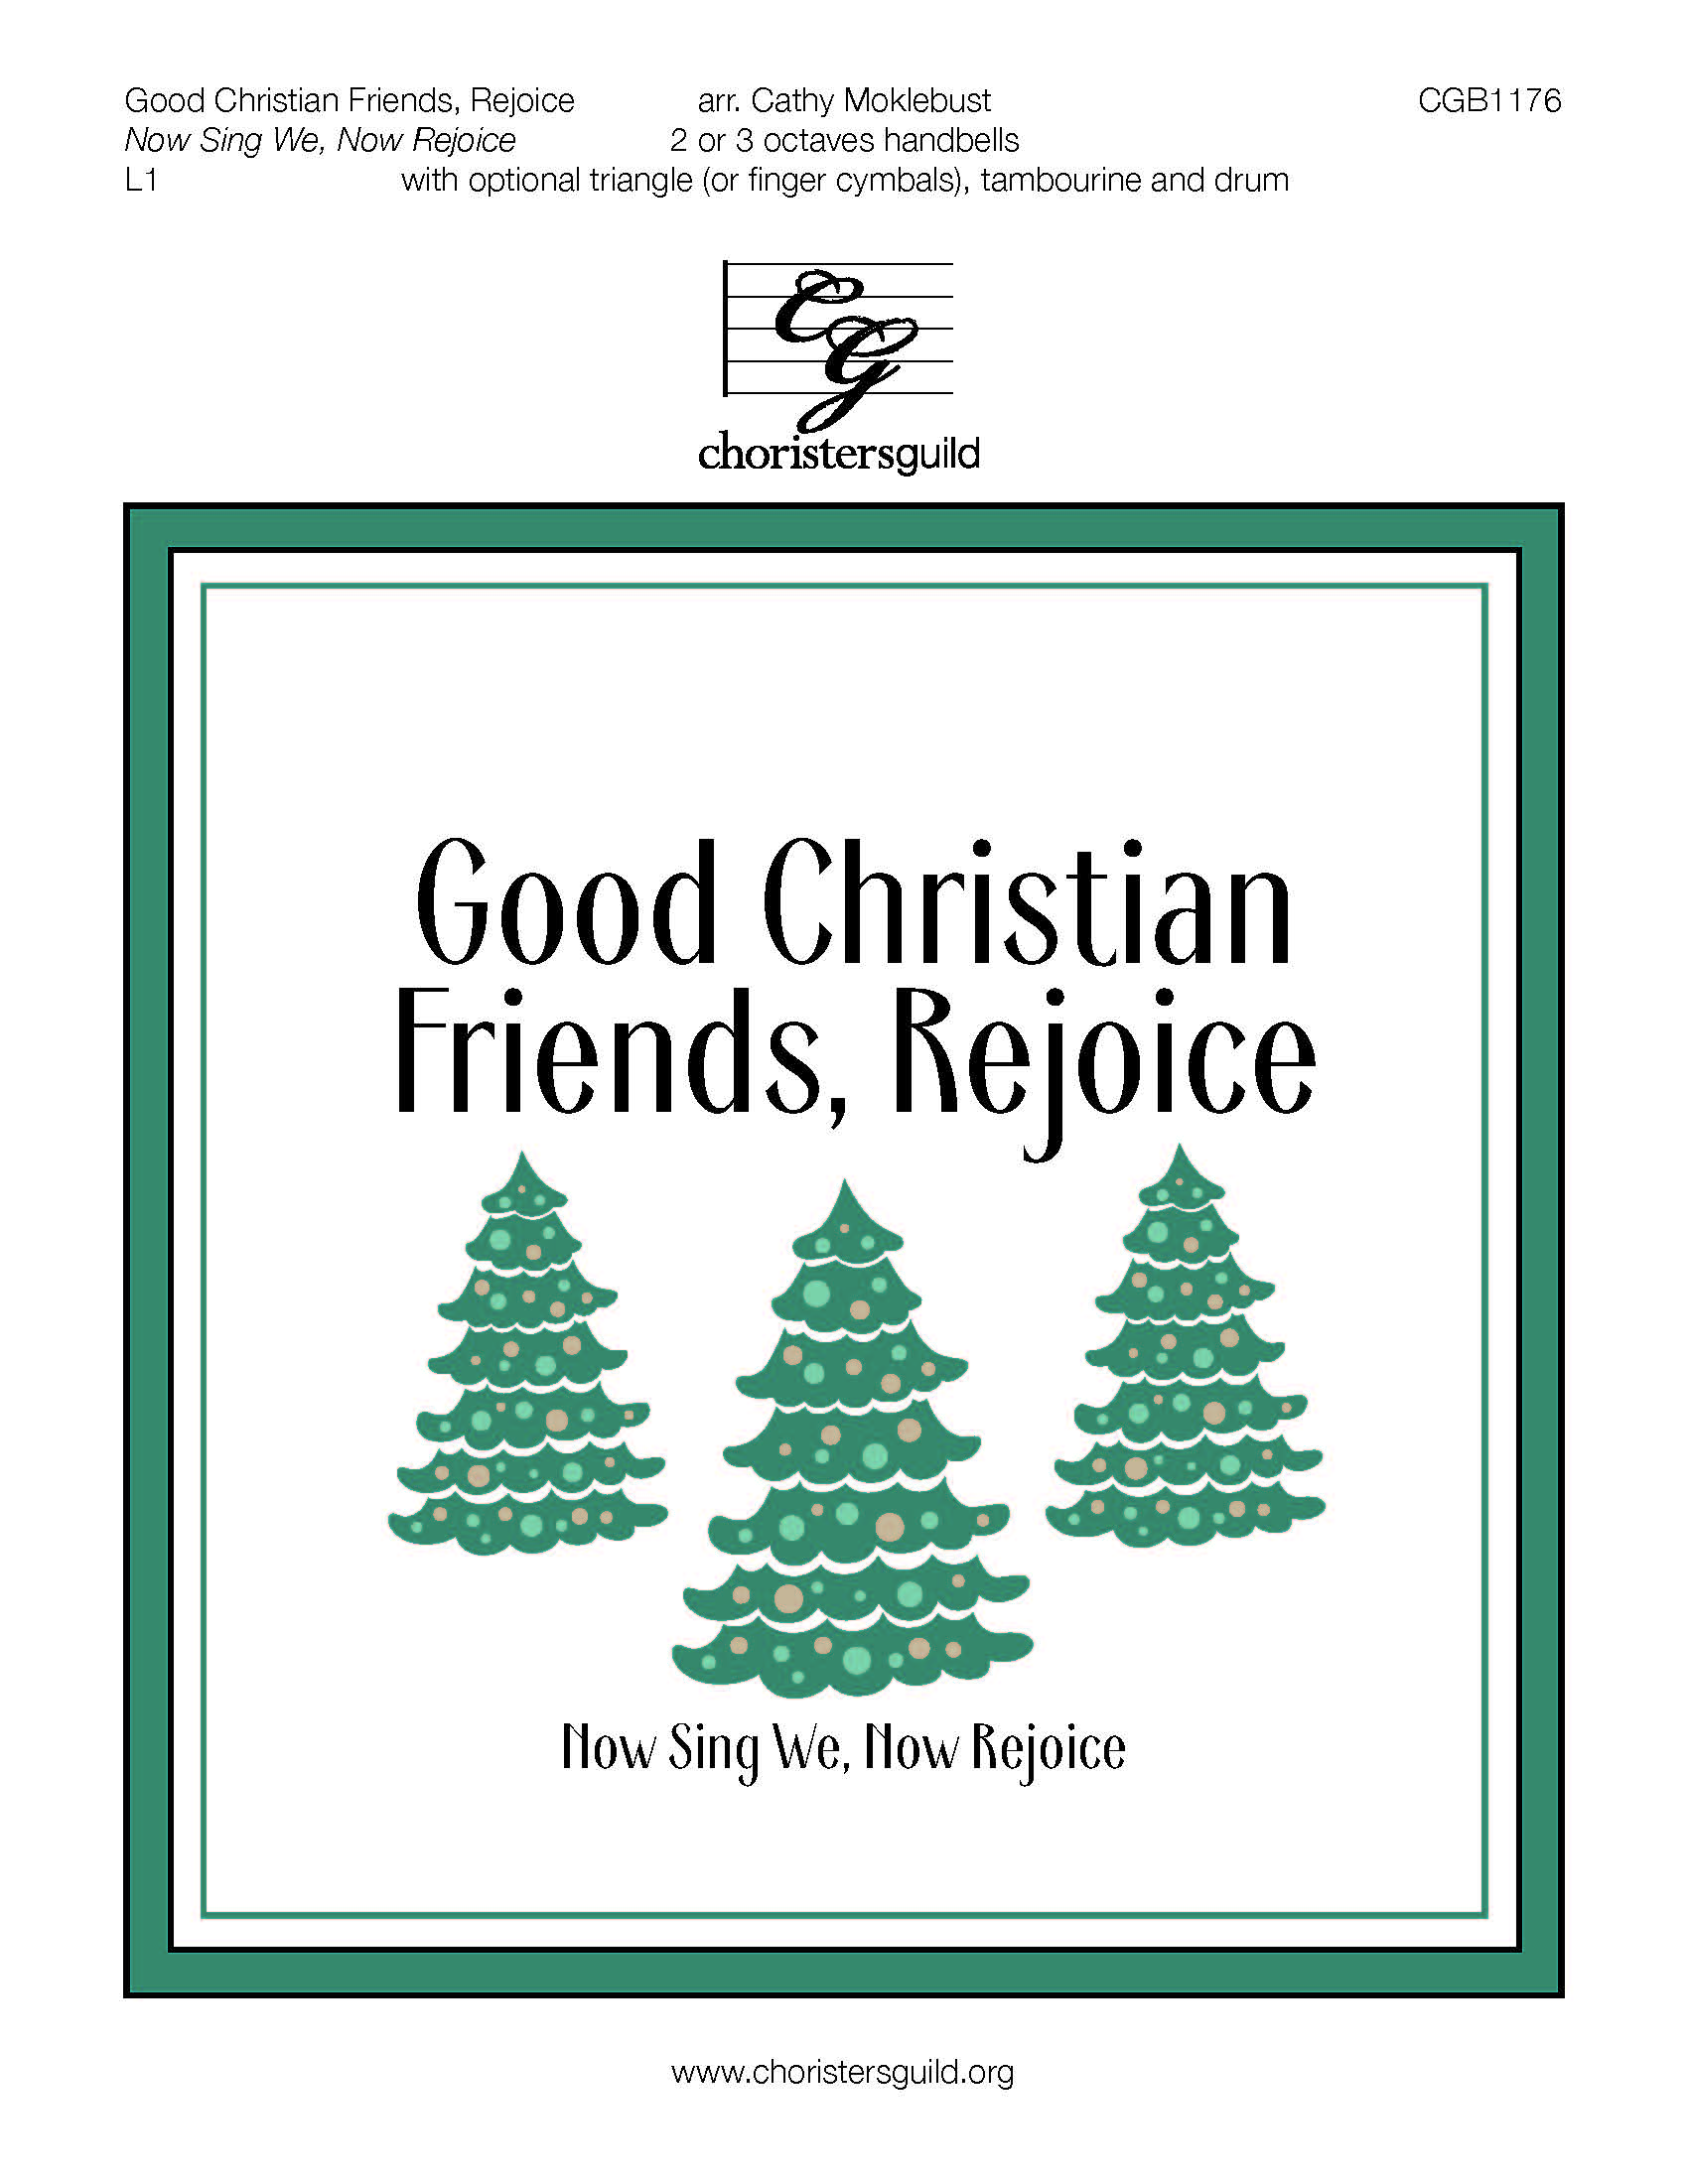 Good Christian Friends, Rejoice - 2-3 octaves